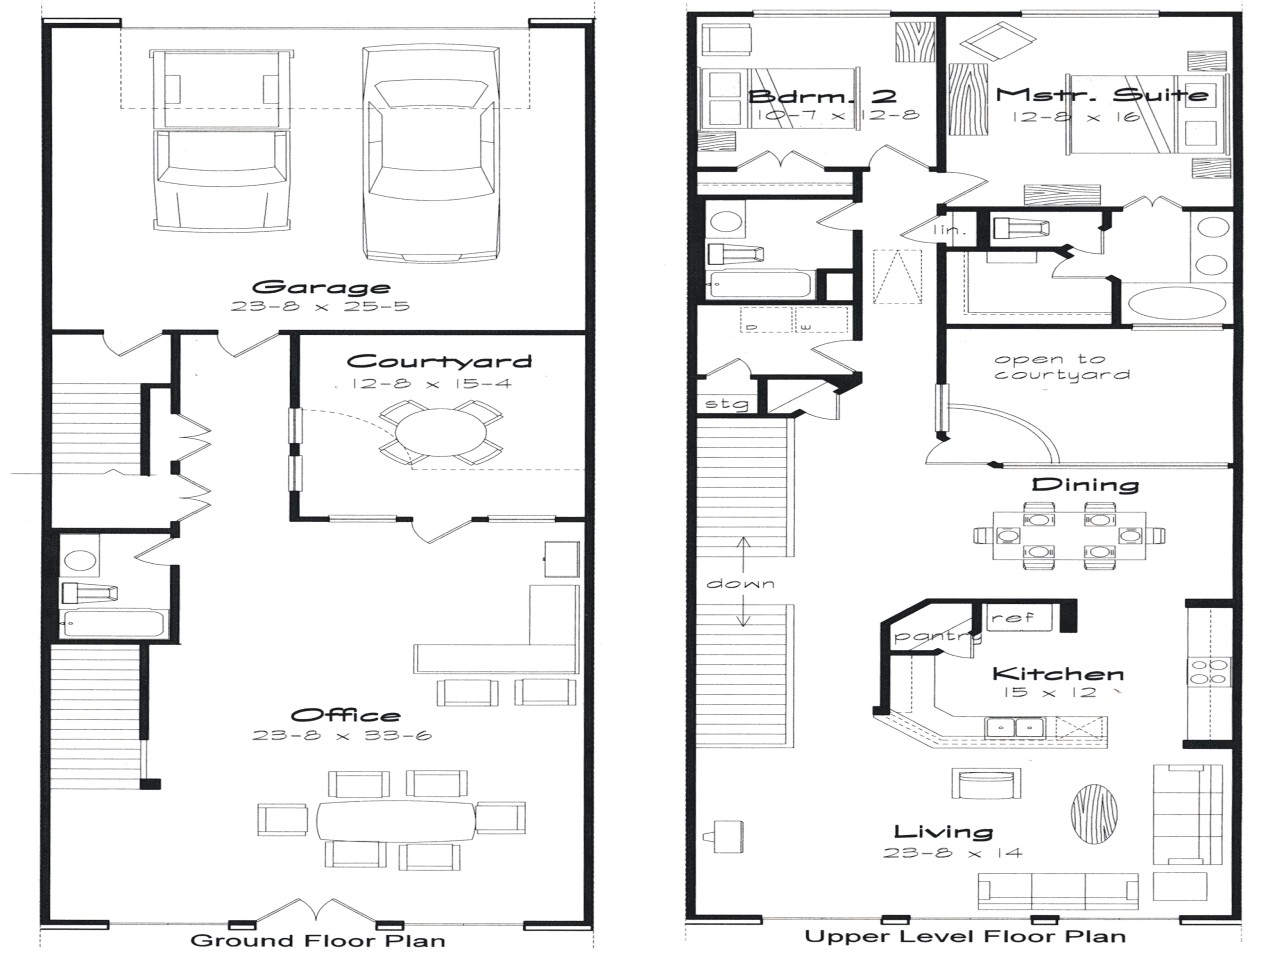 Best Home Plans for Families Best House Plans for Families 2014 Best House Plans